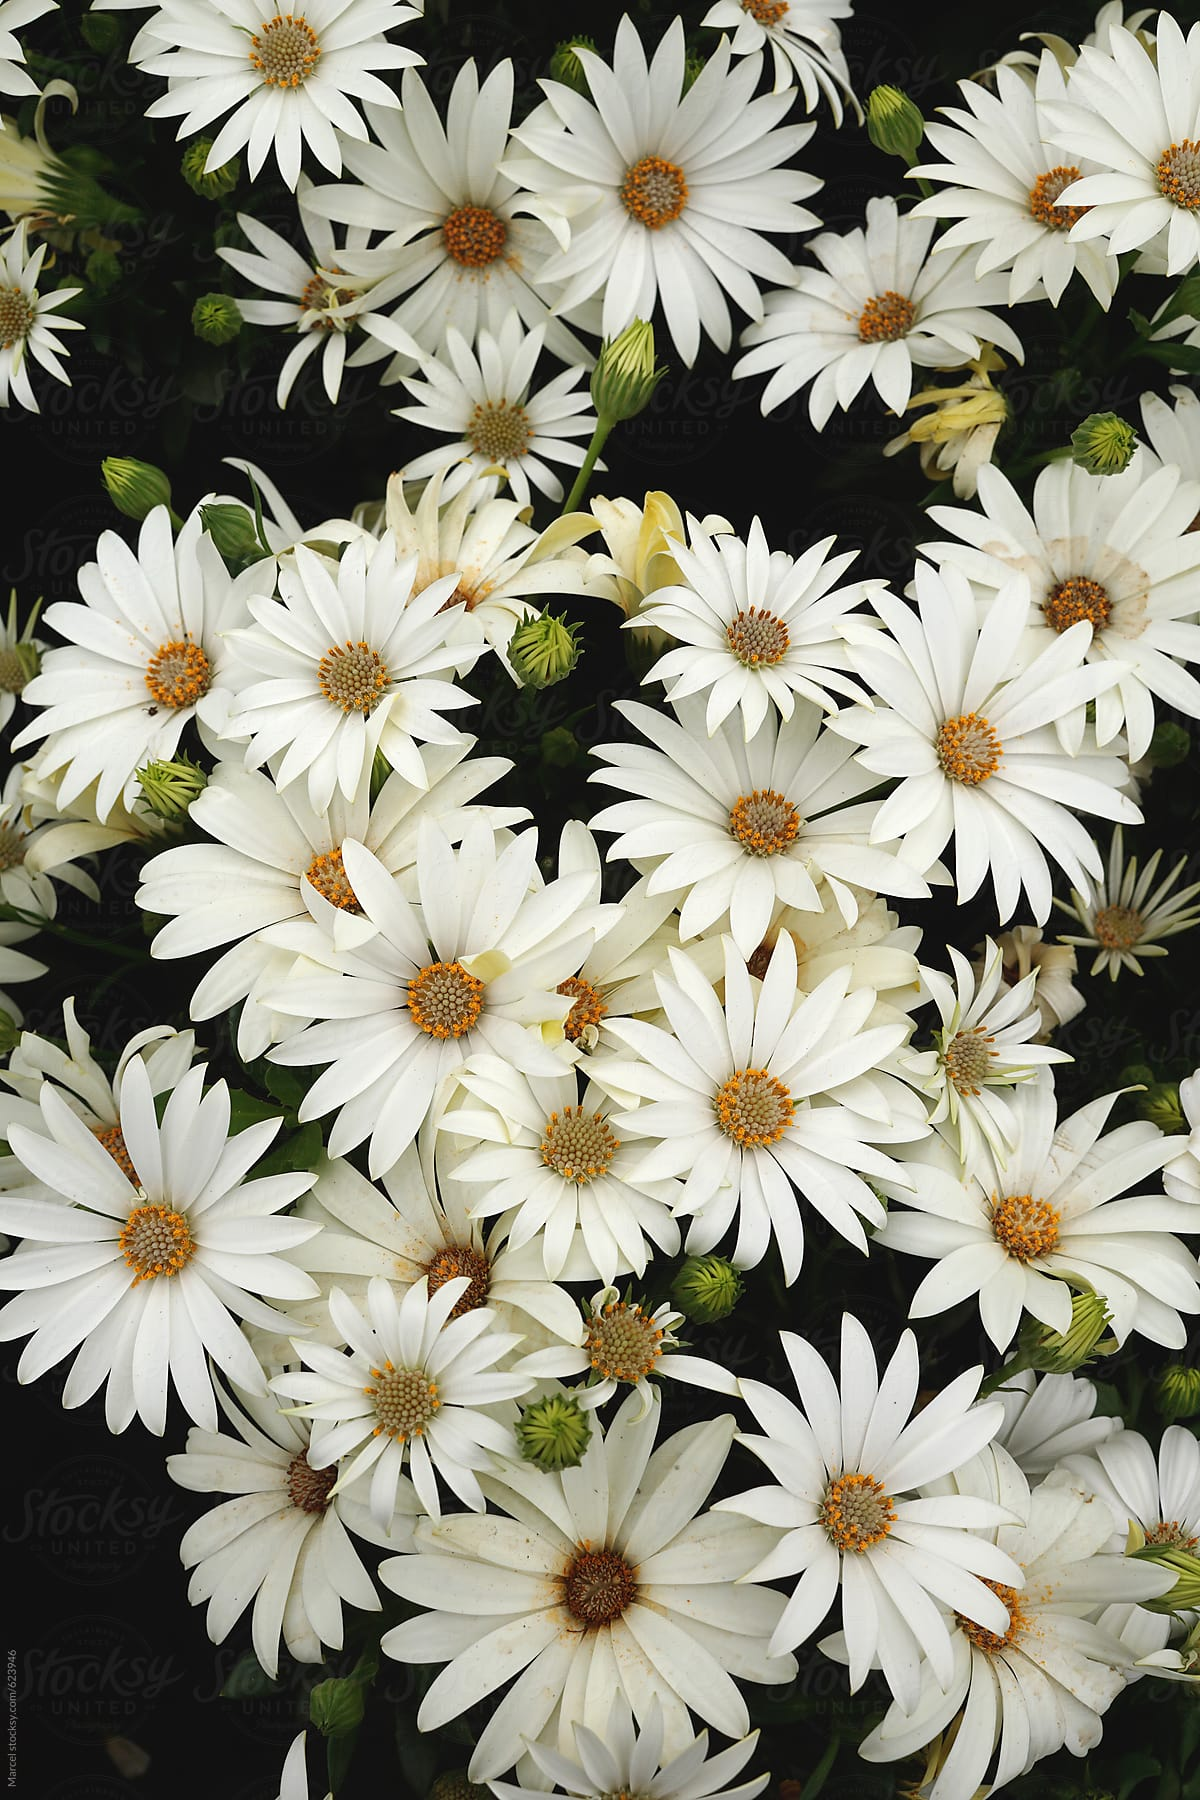 Summer Flowers Background Of White African Daisies Stocksy United